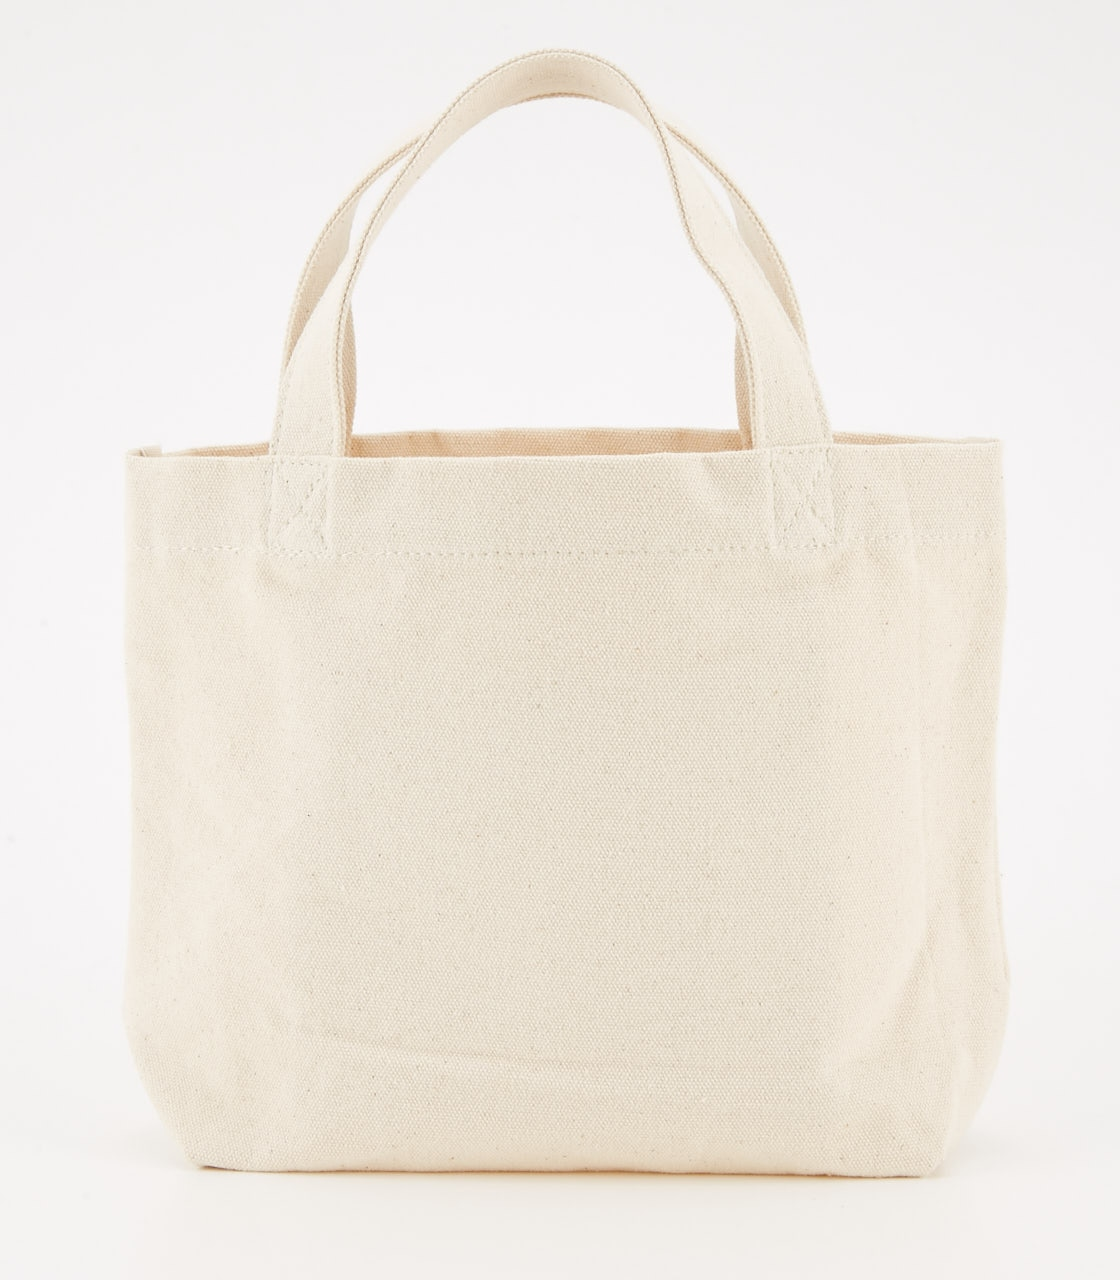 【AZUL BY MOUSSY】ダルマモチーフトートS 詳細画像 O/WHT 3